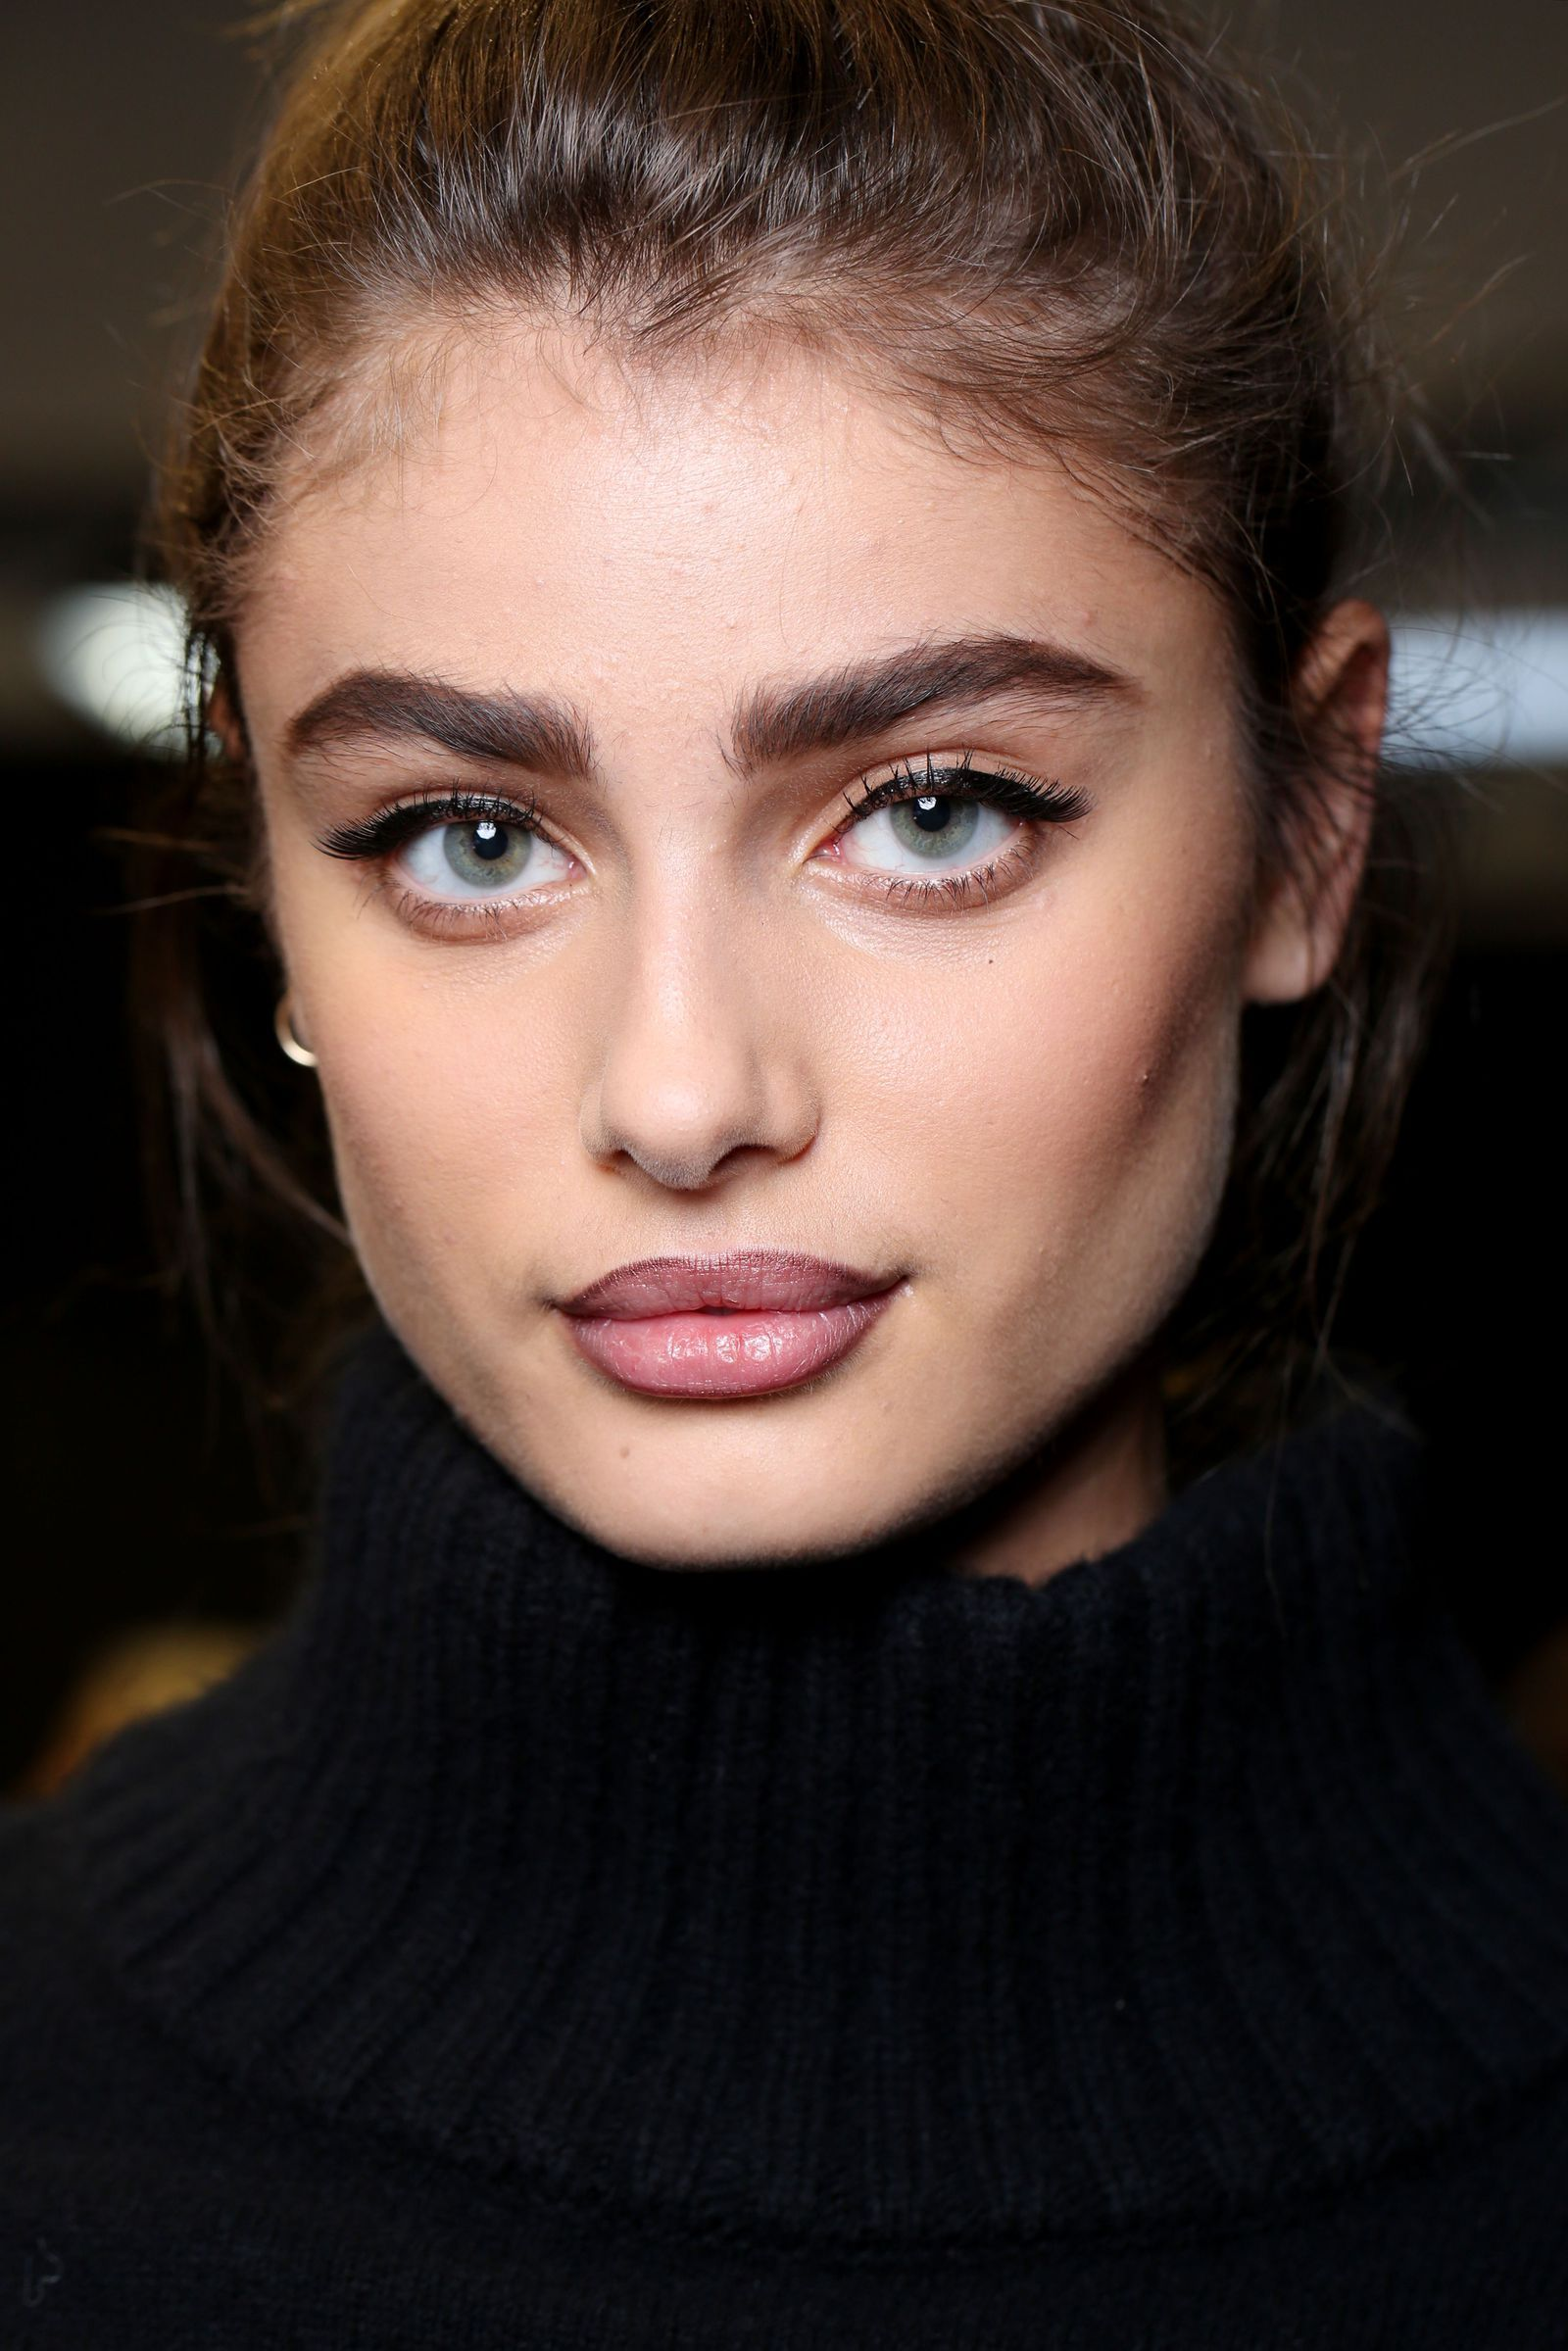 e28e0429295 28 Going Out-Out Make-Up Ideas That Say 'I'm Ready To P.A.R.T.Y ...